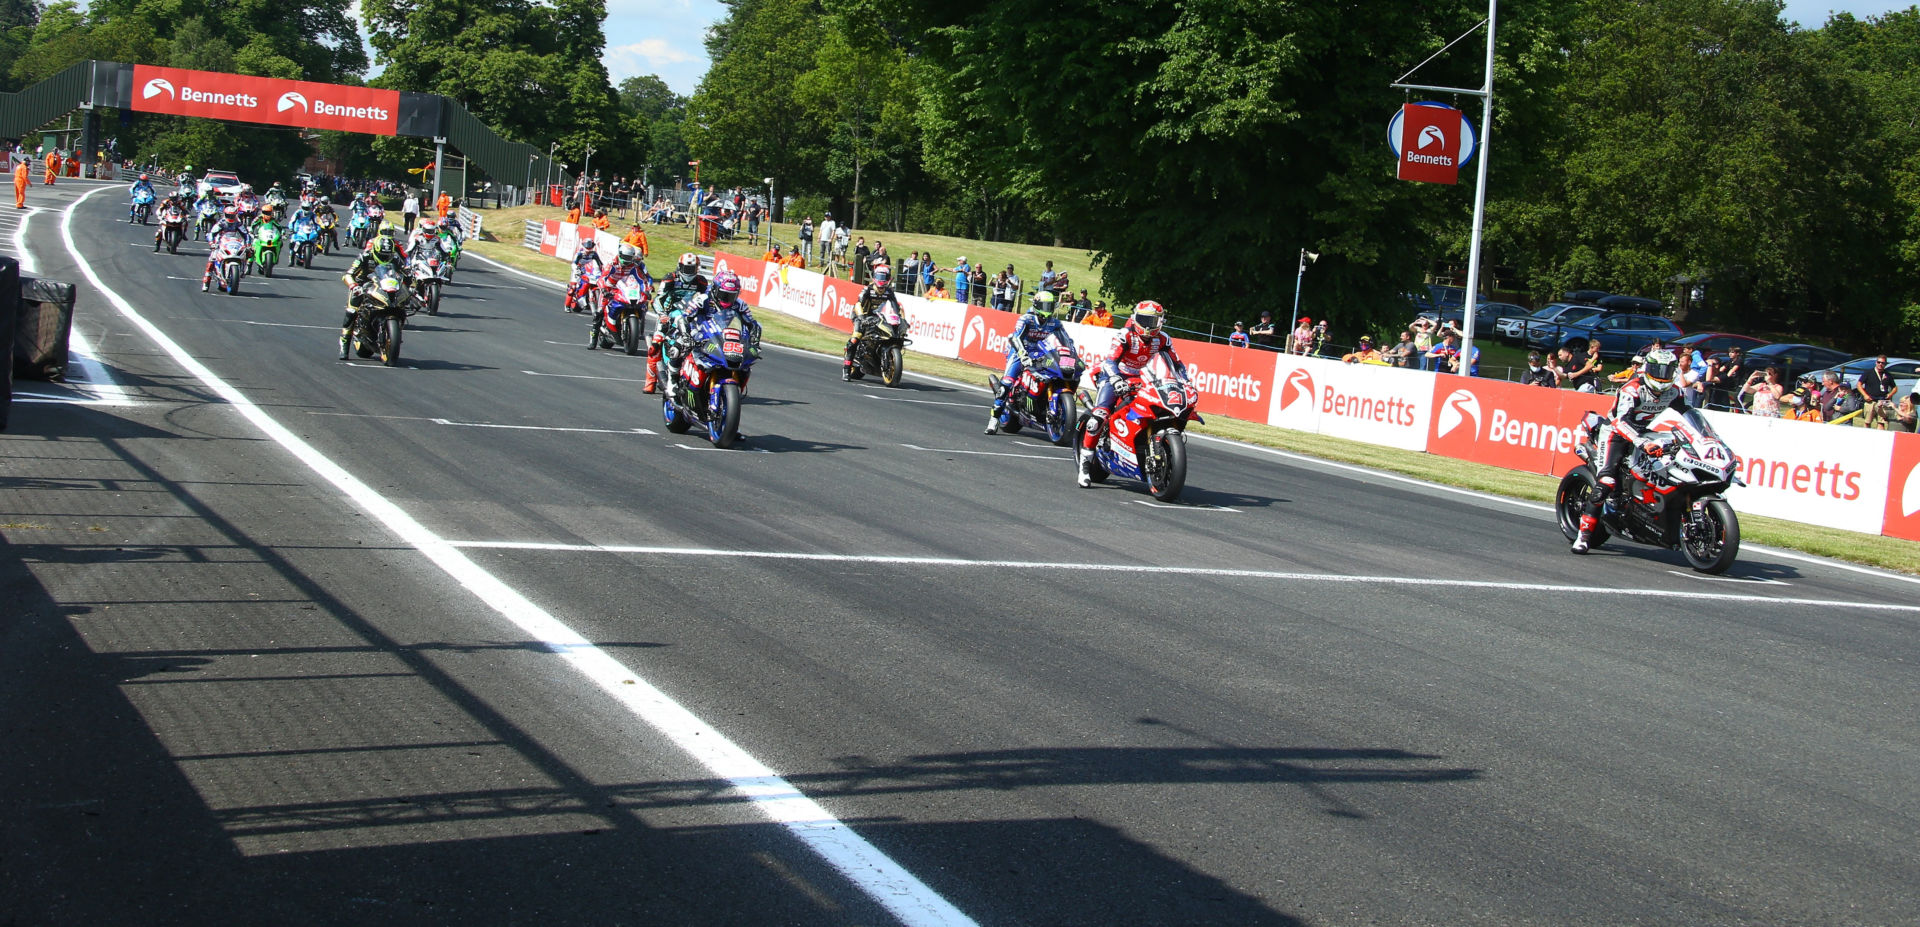 The grid before the start of British Superbike Race One at Oulton Park. Photo courtesy MSVR.